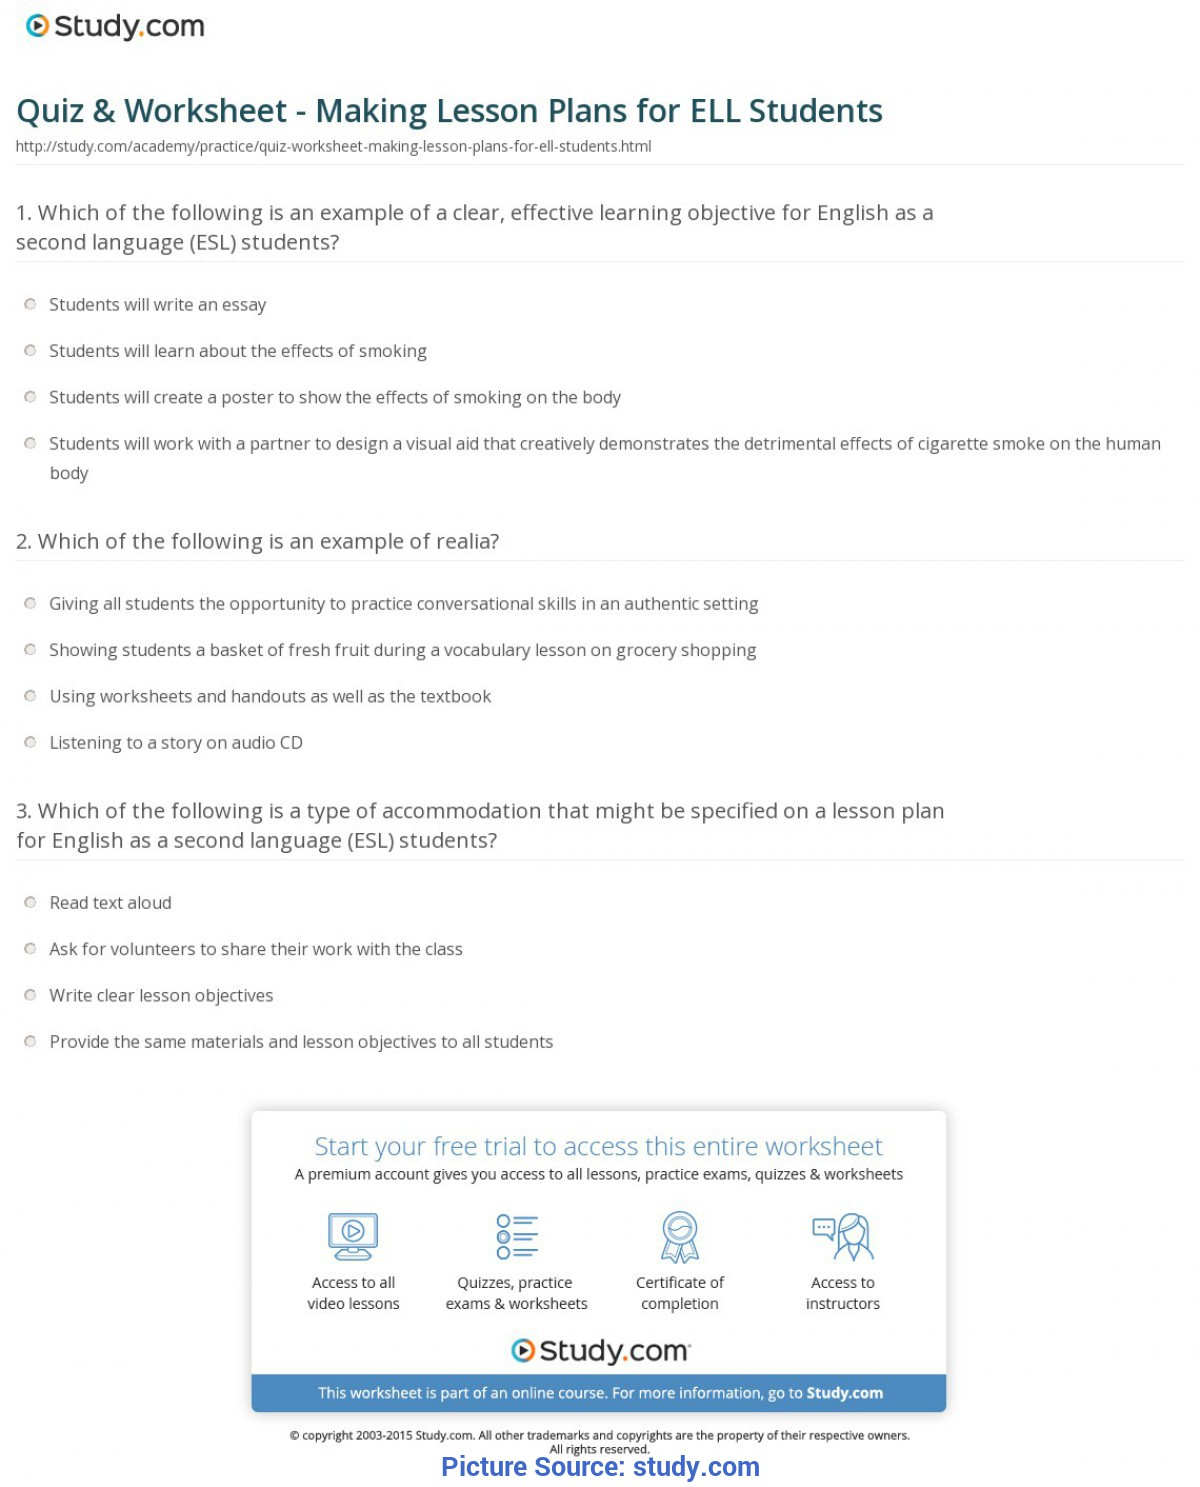 Valuable How To Write A Lesson Plan For Esl Students Quiz & Worksheet - Making Lesson Plans For Ell Students | Study